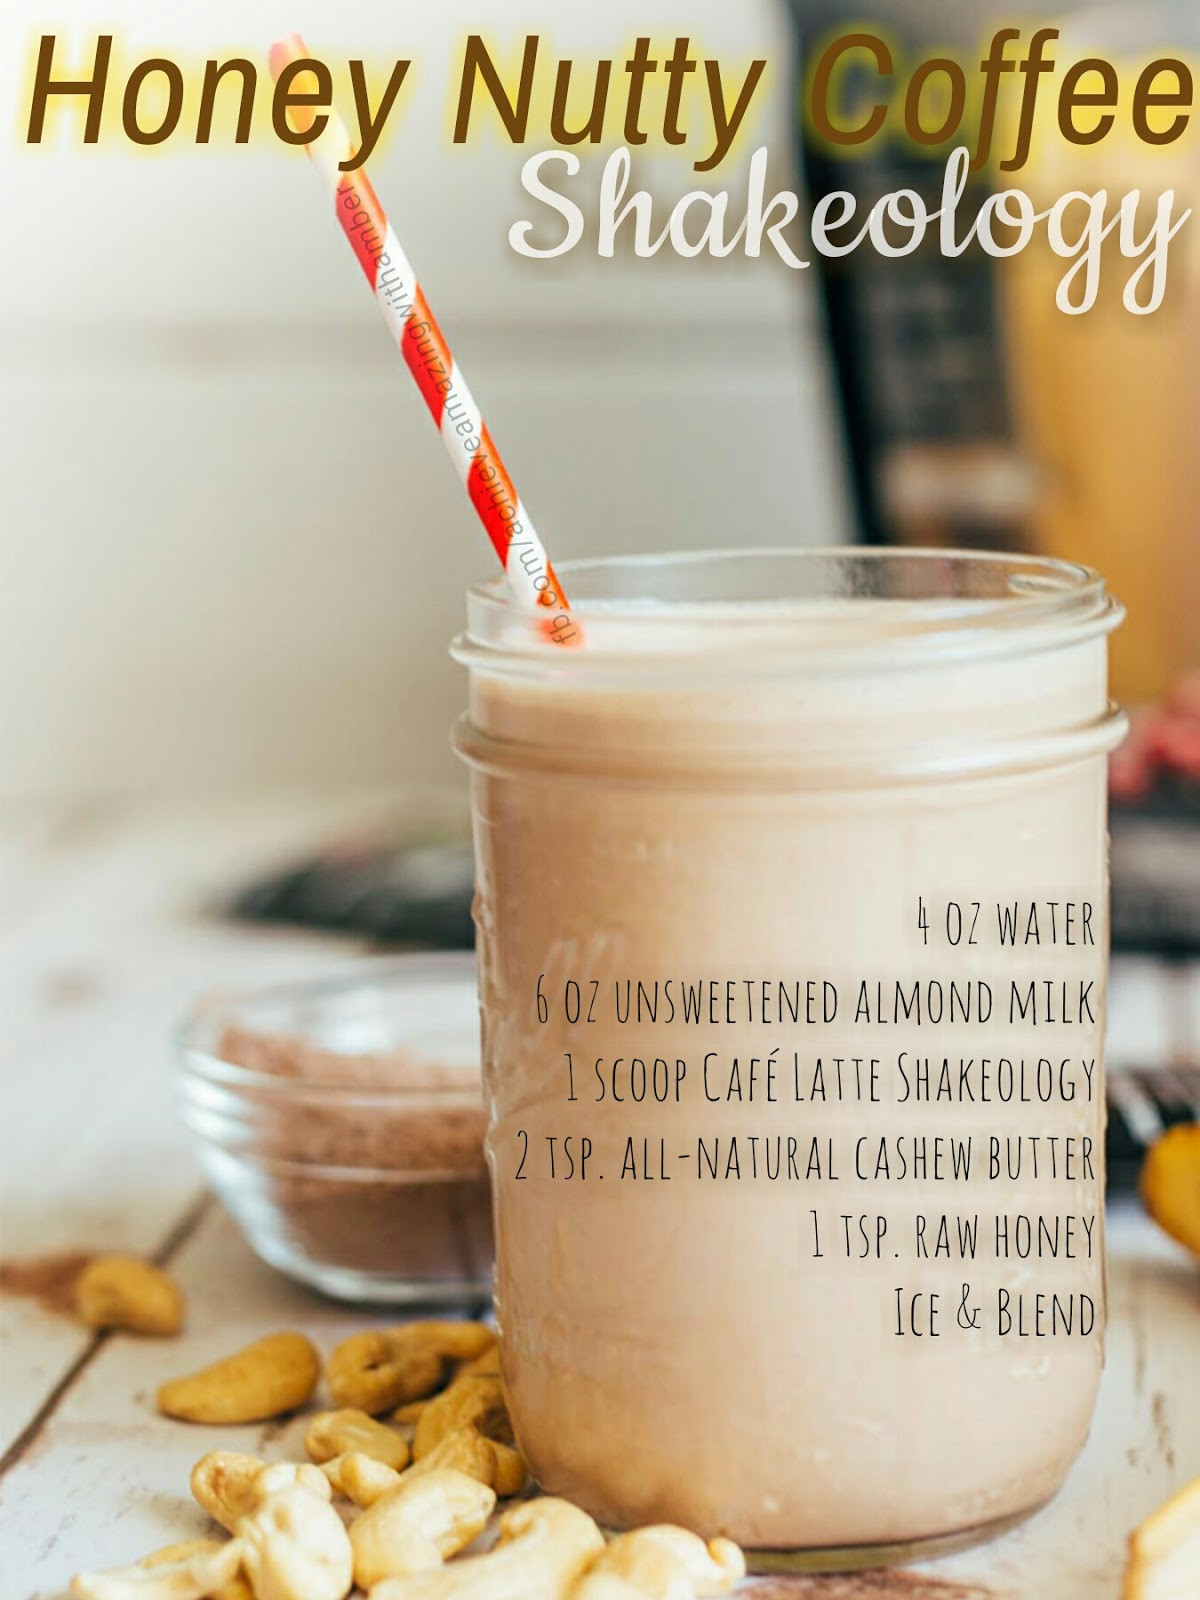 Shakeology Vegan Chocolate Recipes  Achieve Amazing with Amber Thirsty Thursday Shakeology